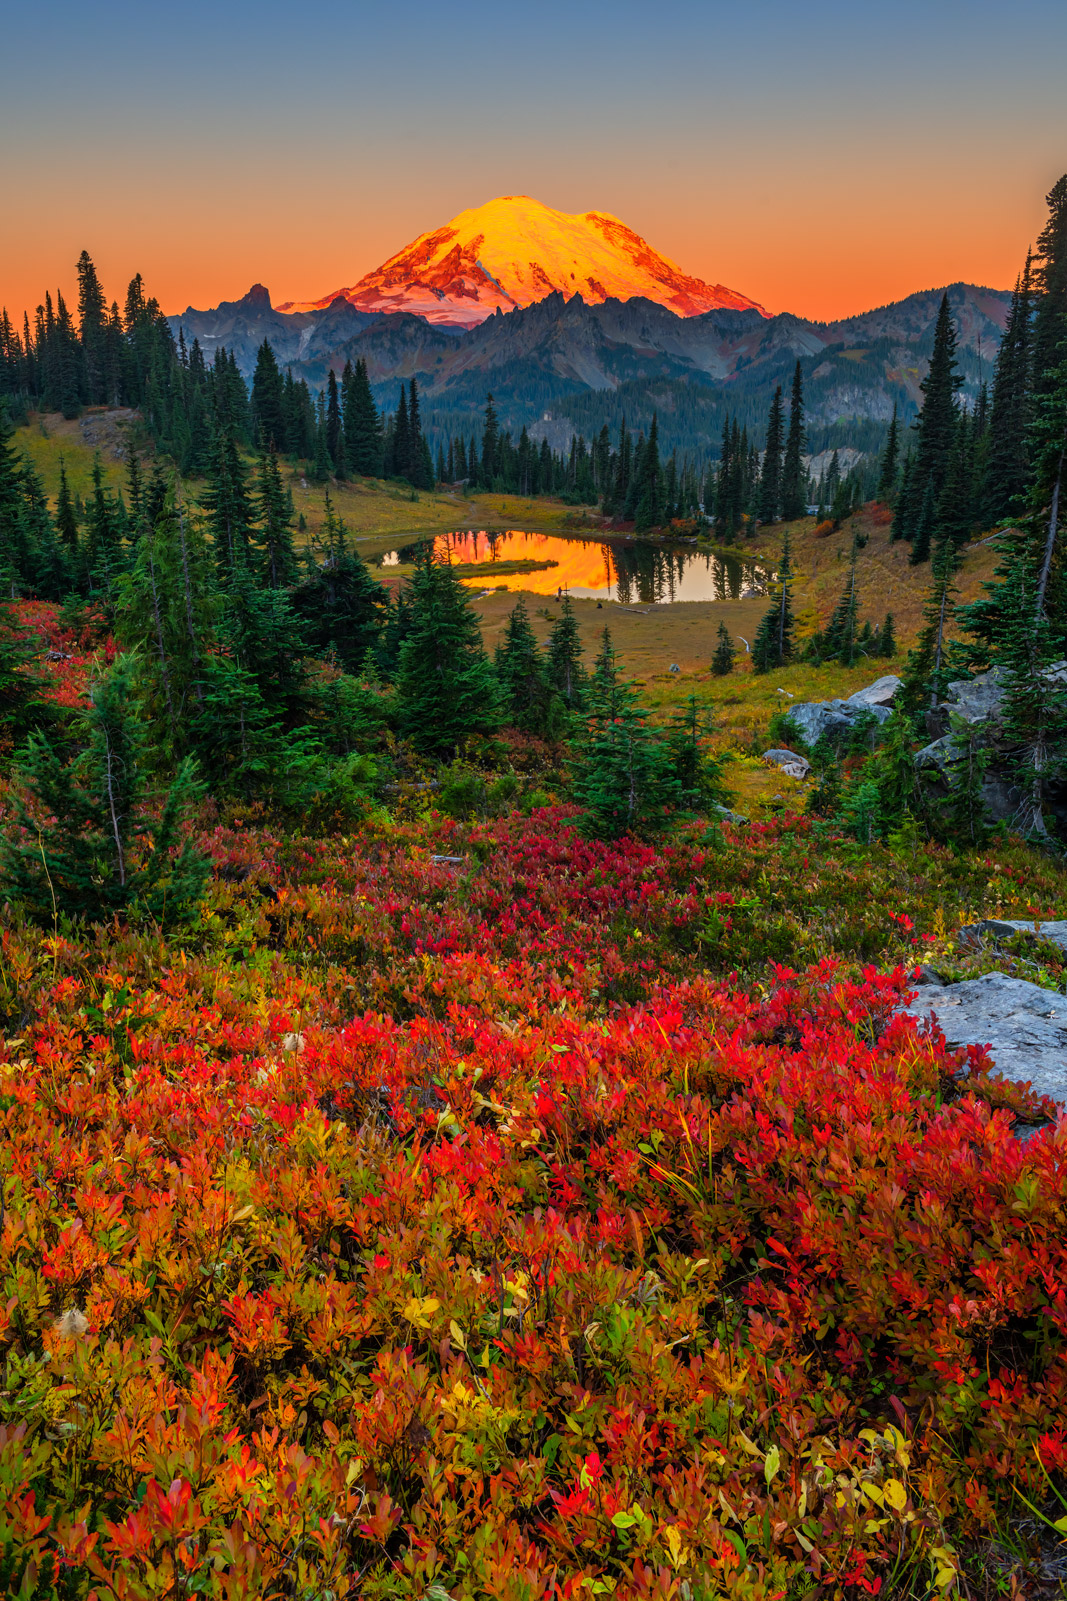 A Limited Edition, Fine Art vertical photograph of vibrant fall color at Tipsoo Lake in front of Mount Rainier in Washington....